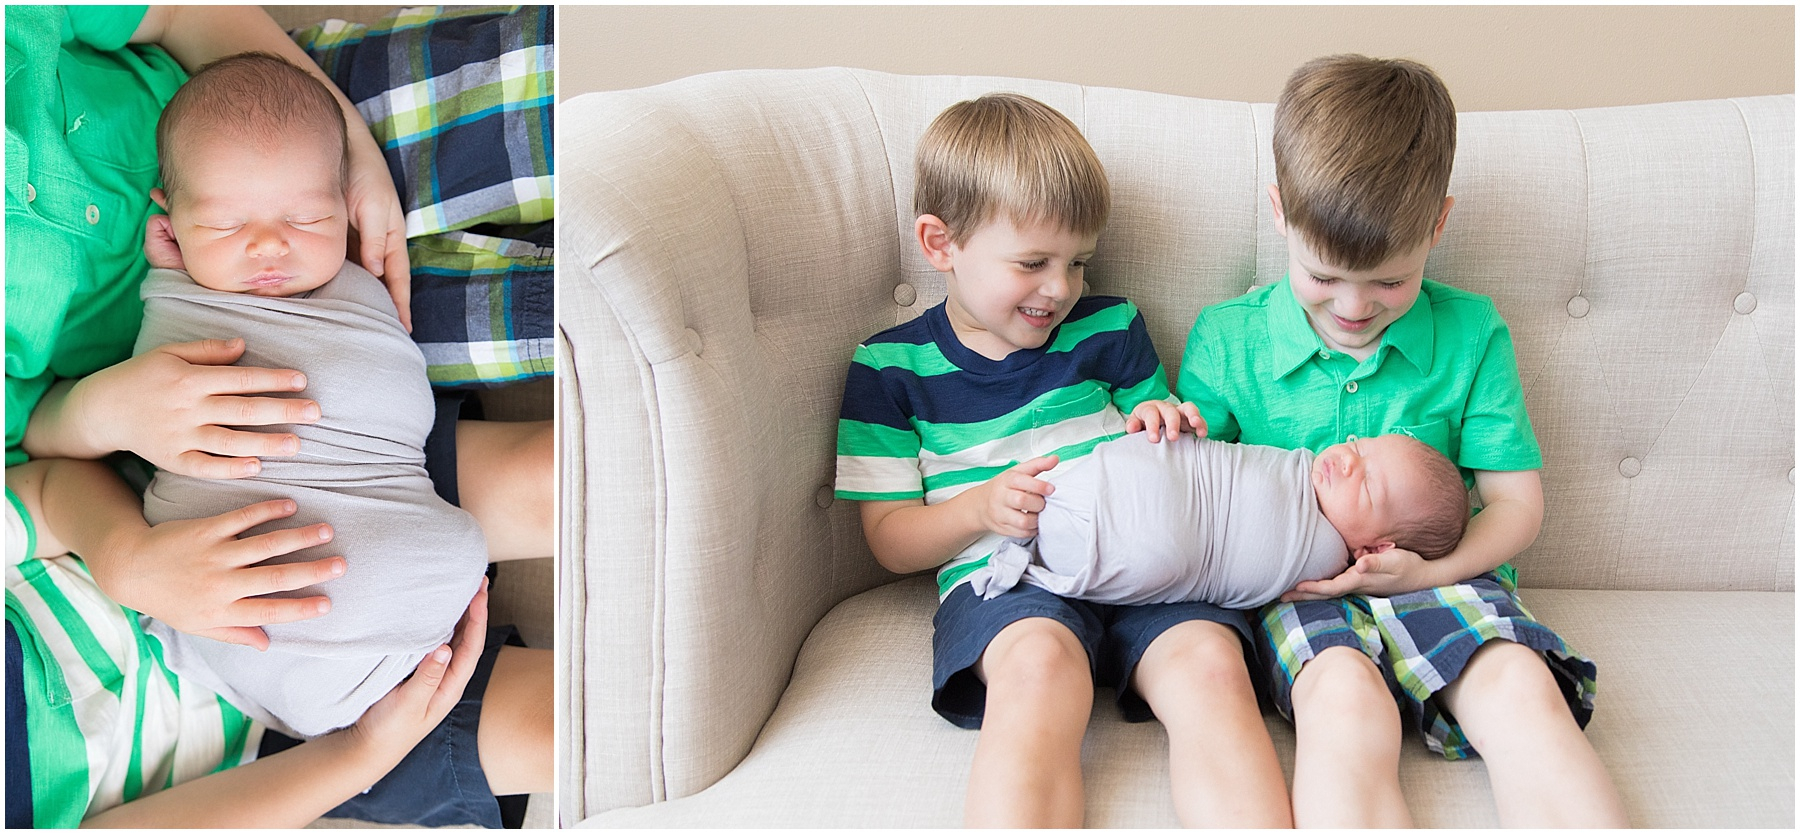 Big brothers giggling while holding newborn baby brother, Indianapolis Children Photography, Raindancer Studios